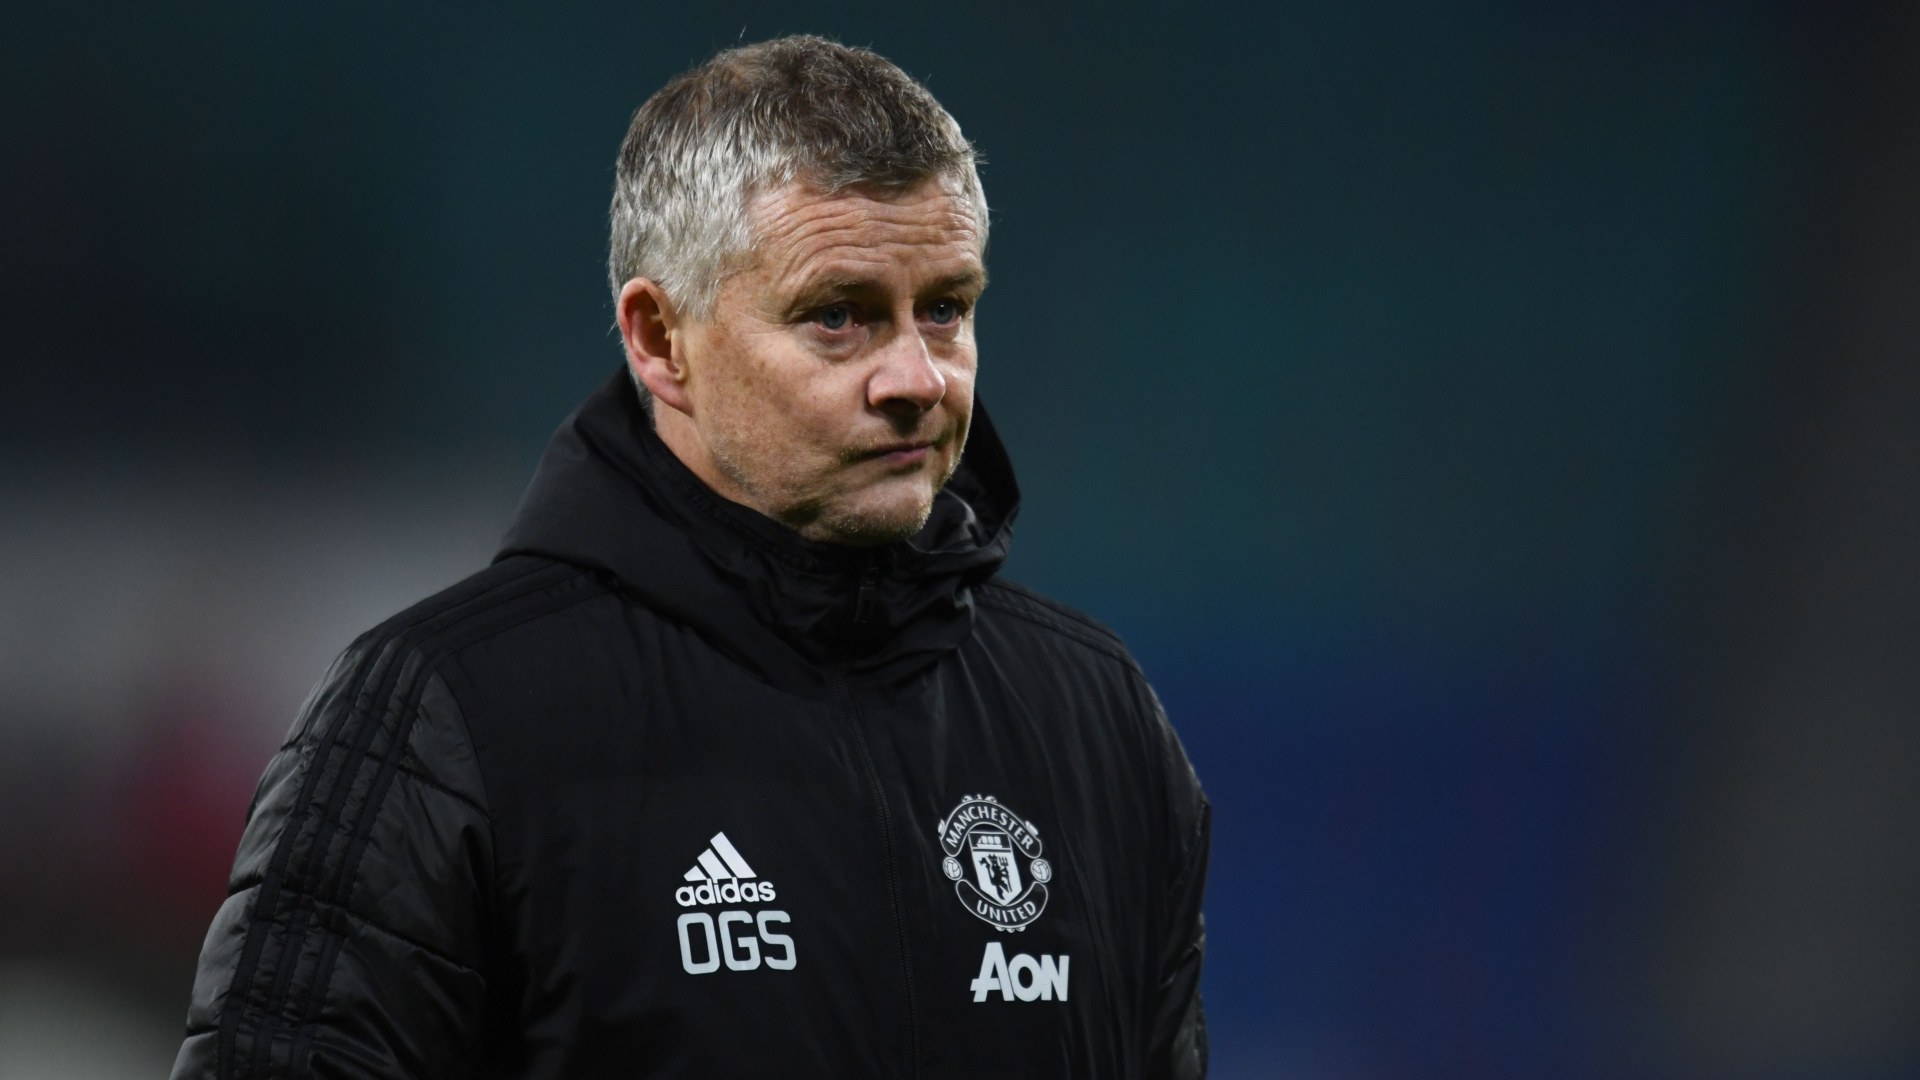 'If you climb Everest and sit down, you freeze to death' – Solskjaer warns Manchester United against complacency